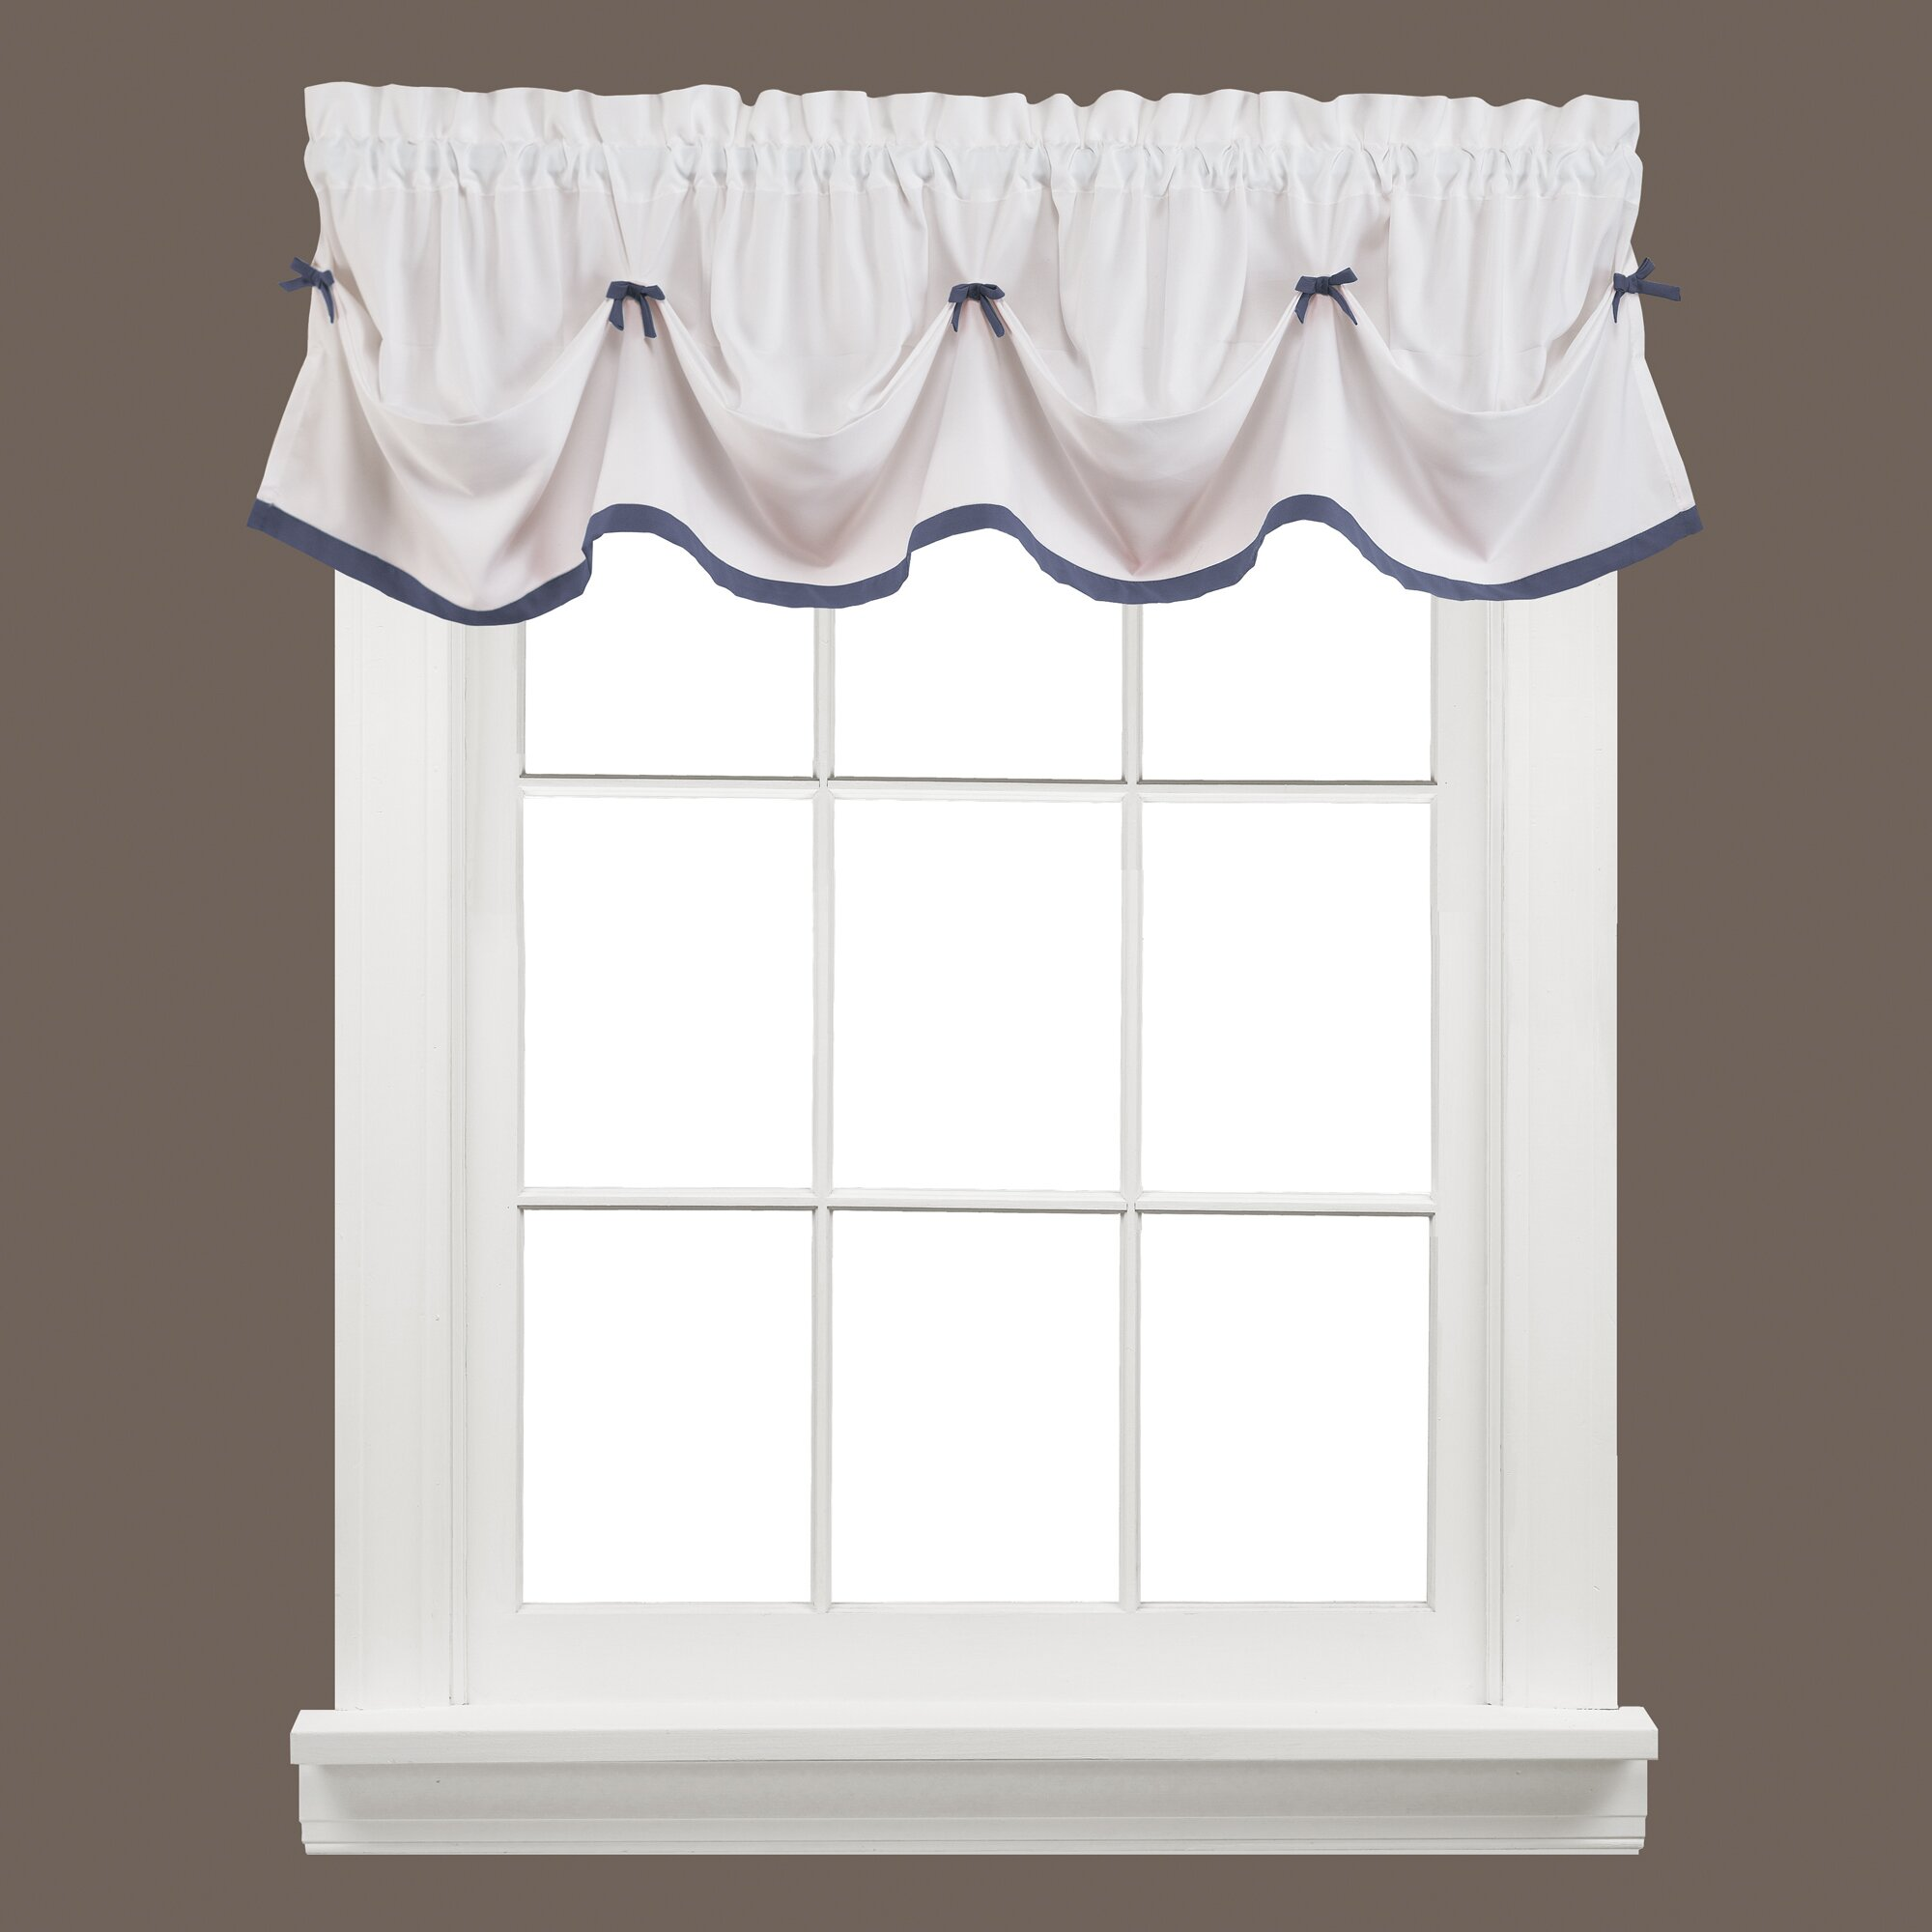 Kitchen Curtains At Walmart 100 Valance Curtains For Bedroom Kitchen Window Shades Leaves